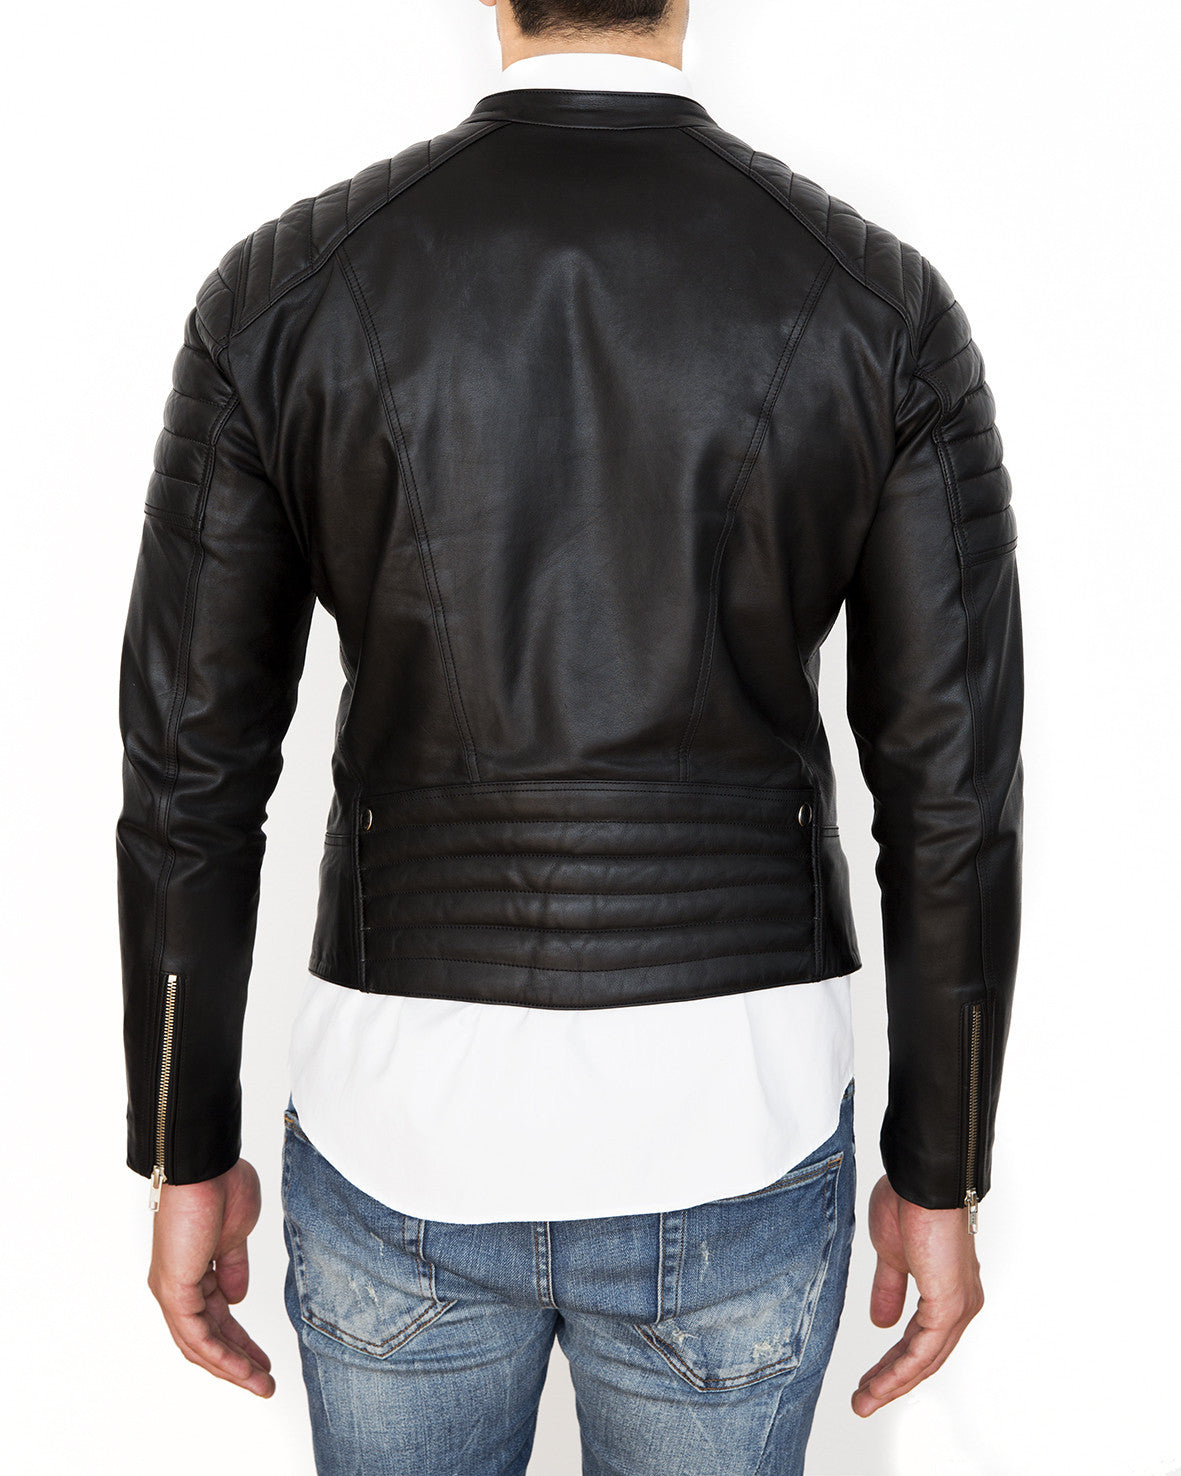 KL2 LEATHER BIKER JACKET